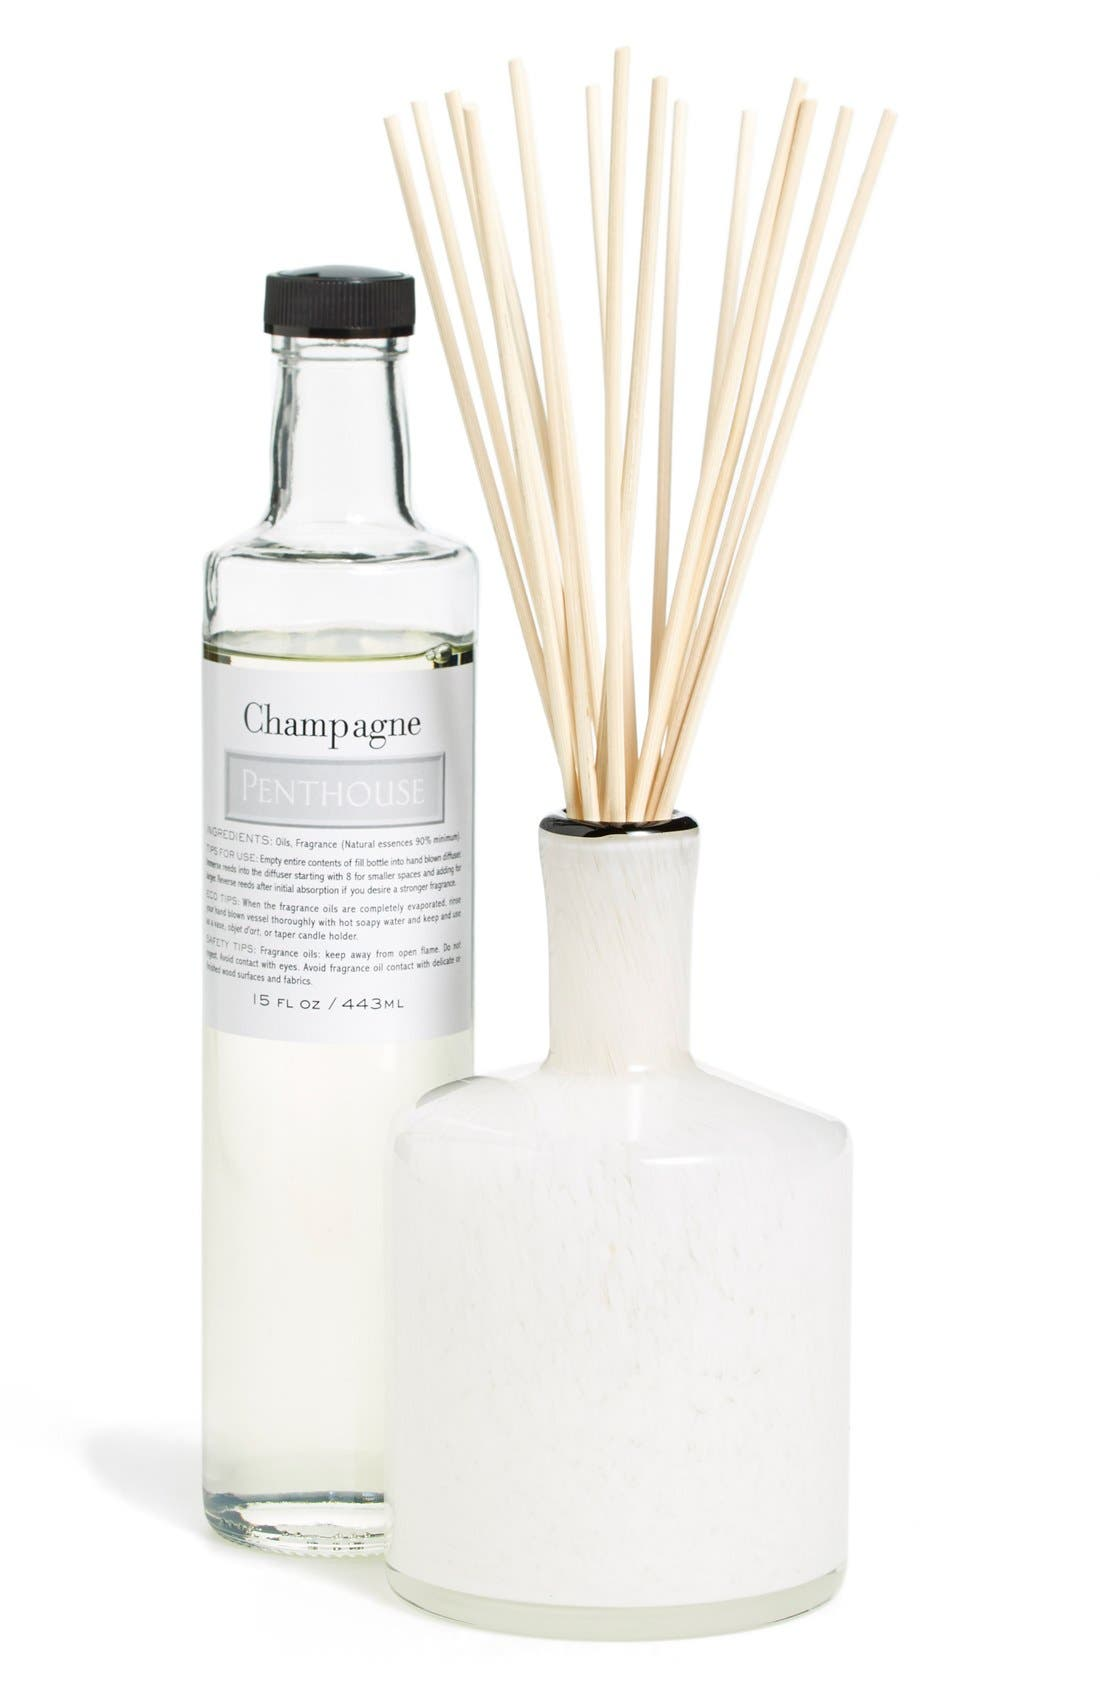 LAFCO 'Champagne - Penthouse' Fragrance Diffuser